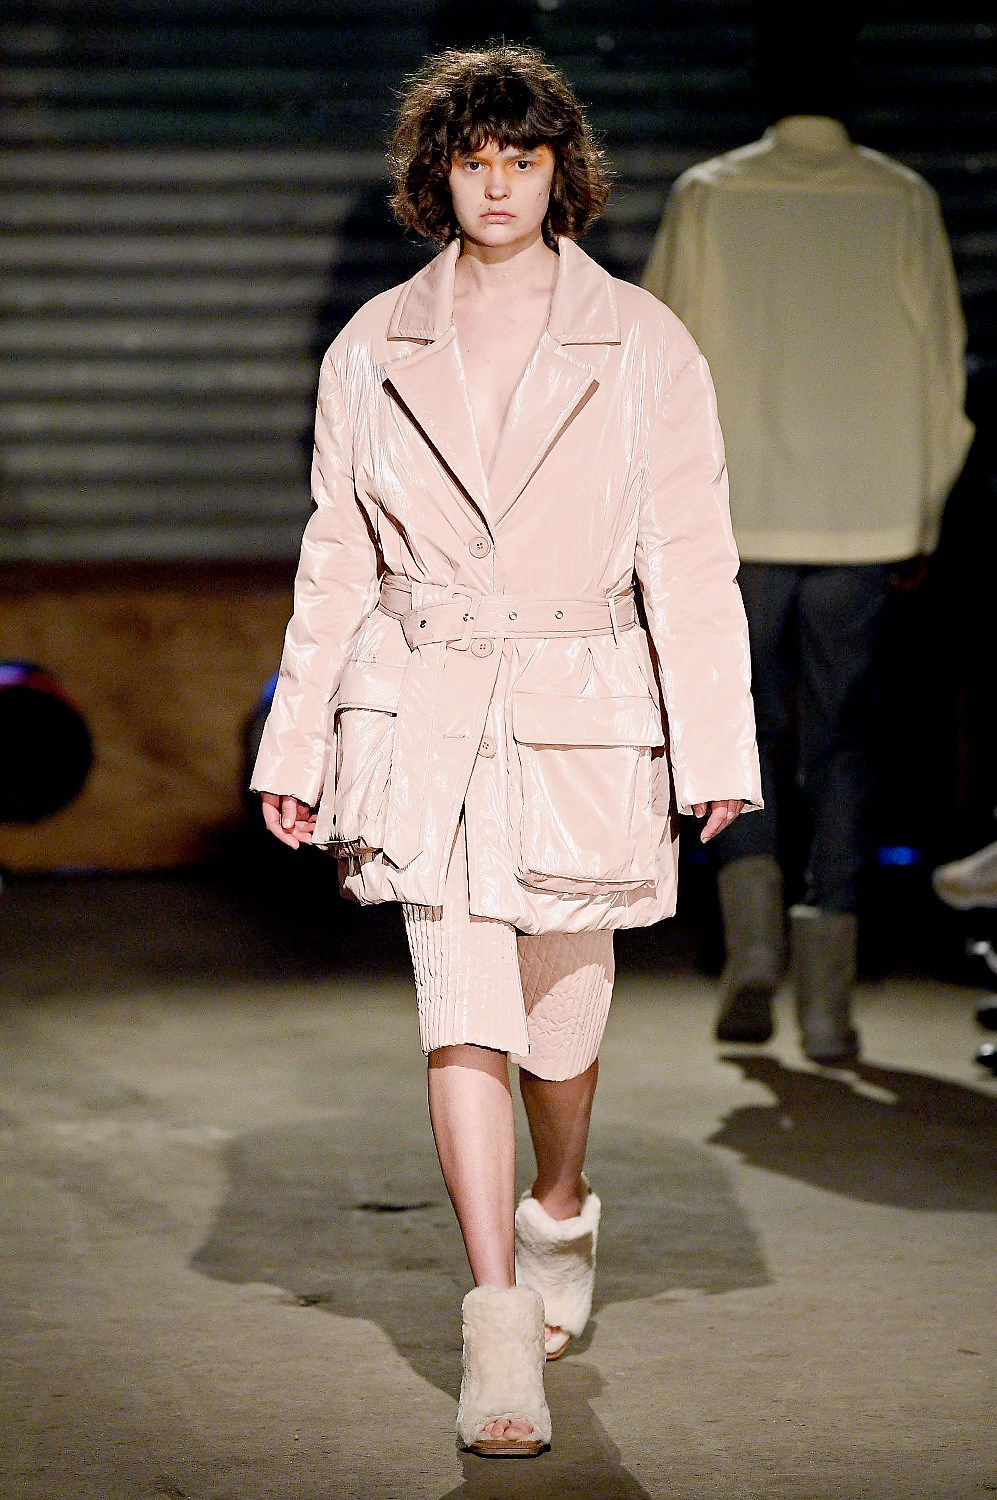 FW 19-20 NEW YORK ECKHAUS LATTA WOMEN